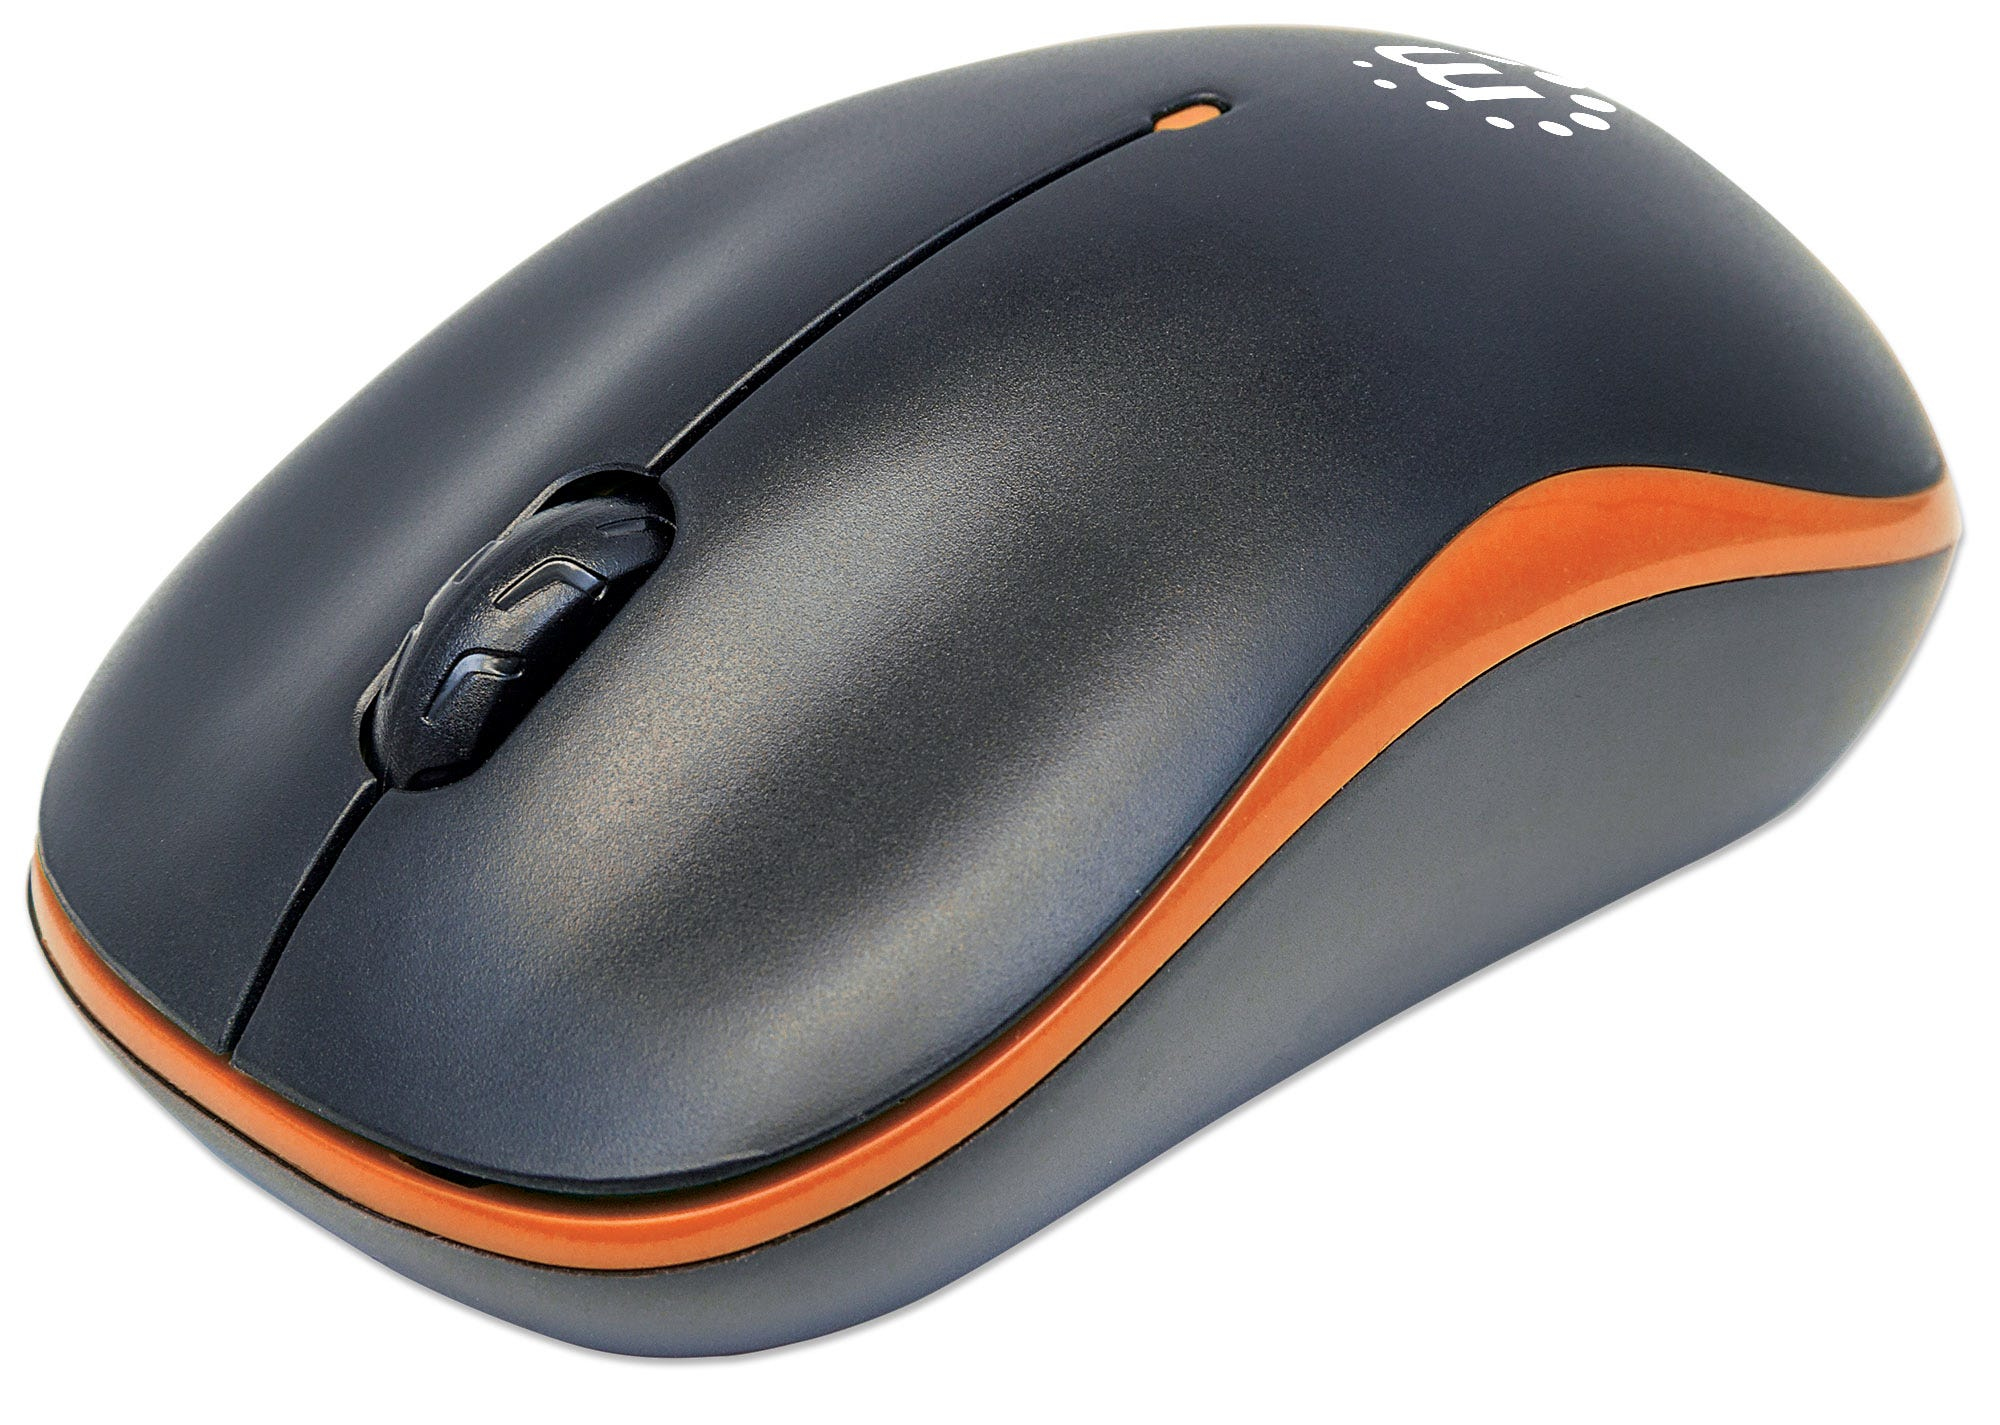 Manhattan Success Wireless Mouse, Black/Orange, 1000dpi, 2.4Ghz (up to 10m), USB, Optical, Three Button with Scroll Wheel, USB micro receiver, AA battery (included), Low friction base, Blister